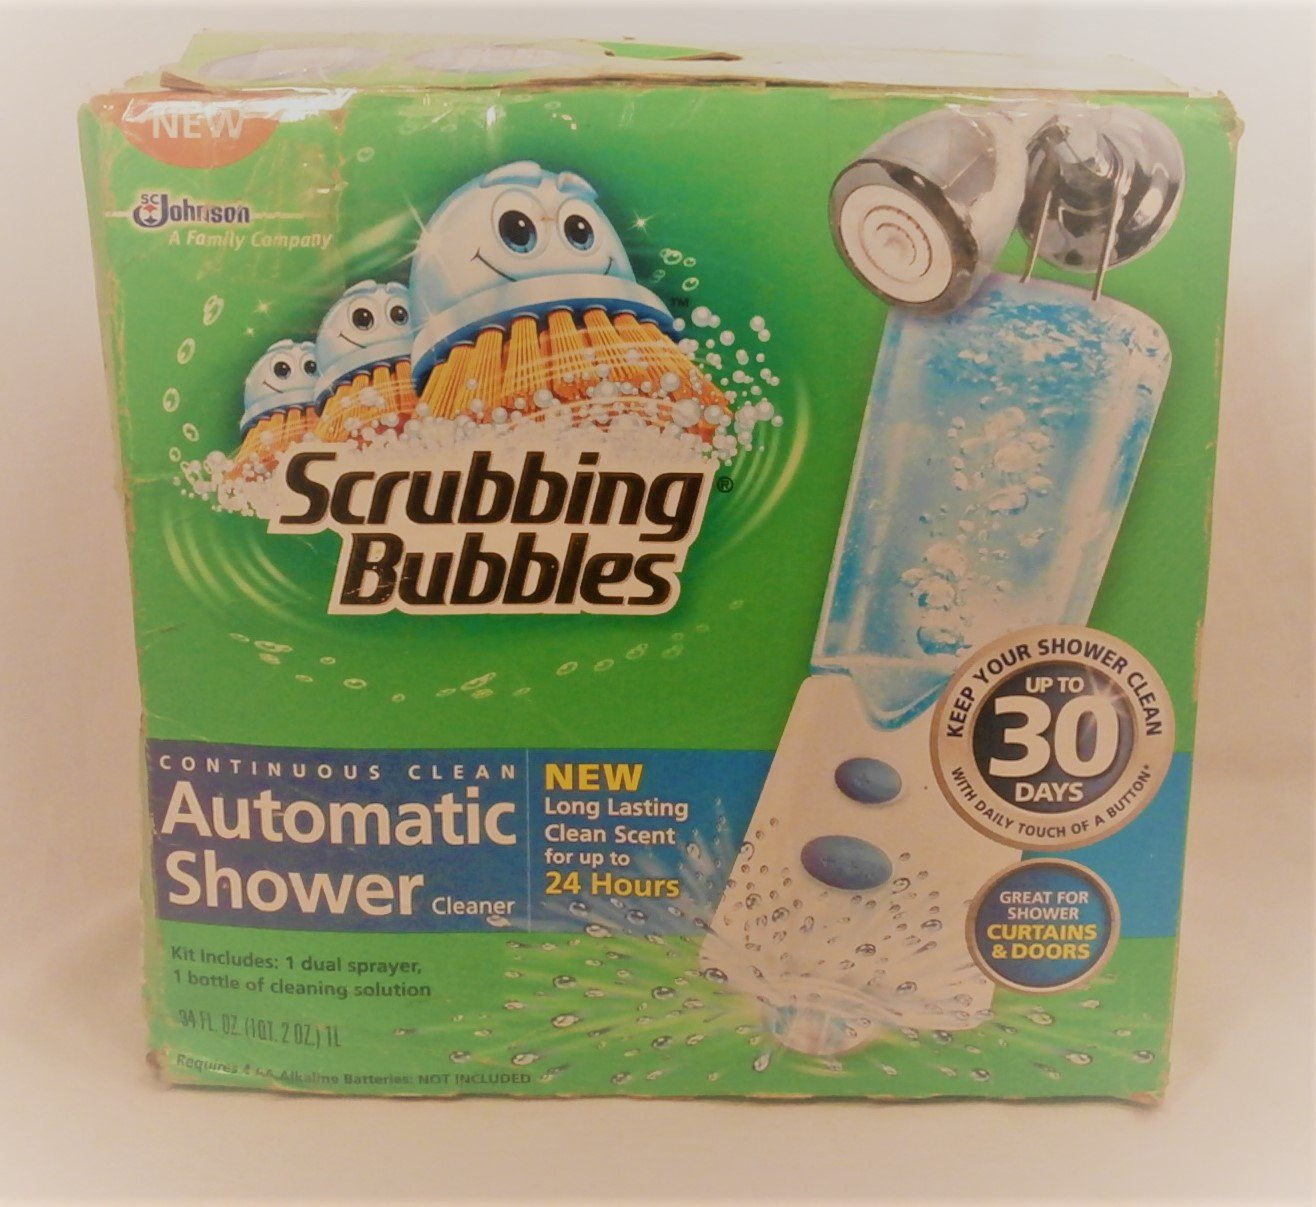 Scrubbing Bubbles 30 Days Continuous Clean Automatic Shower Cleaner 1 Refill by Scrubbing Bubbles (Image #2)